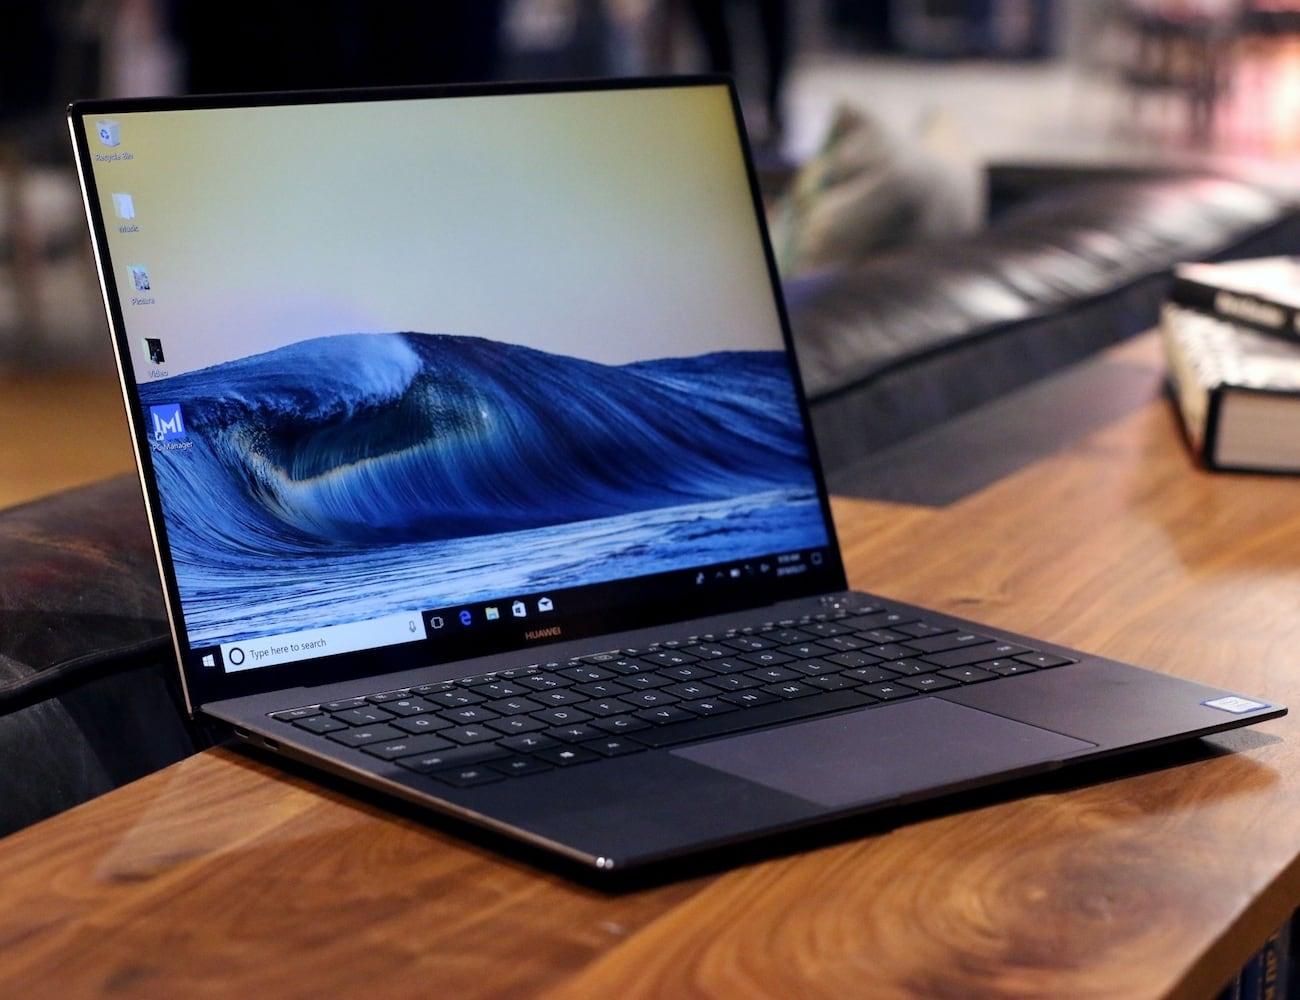 Huawei MateBook X Pro Ultra Slim Notebook has a 91% screen-to-body ratio